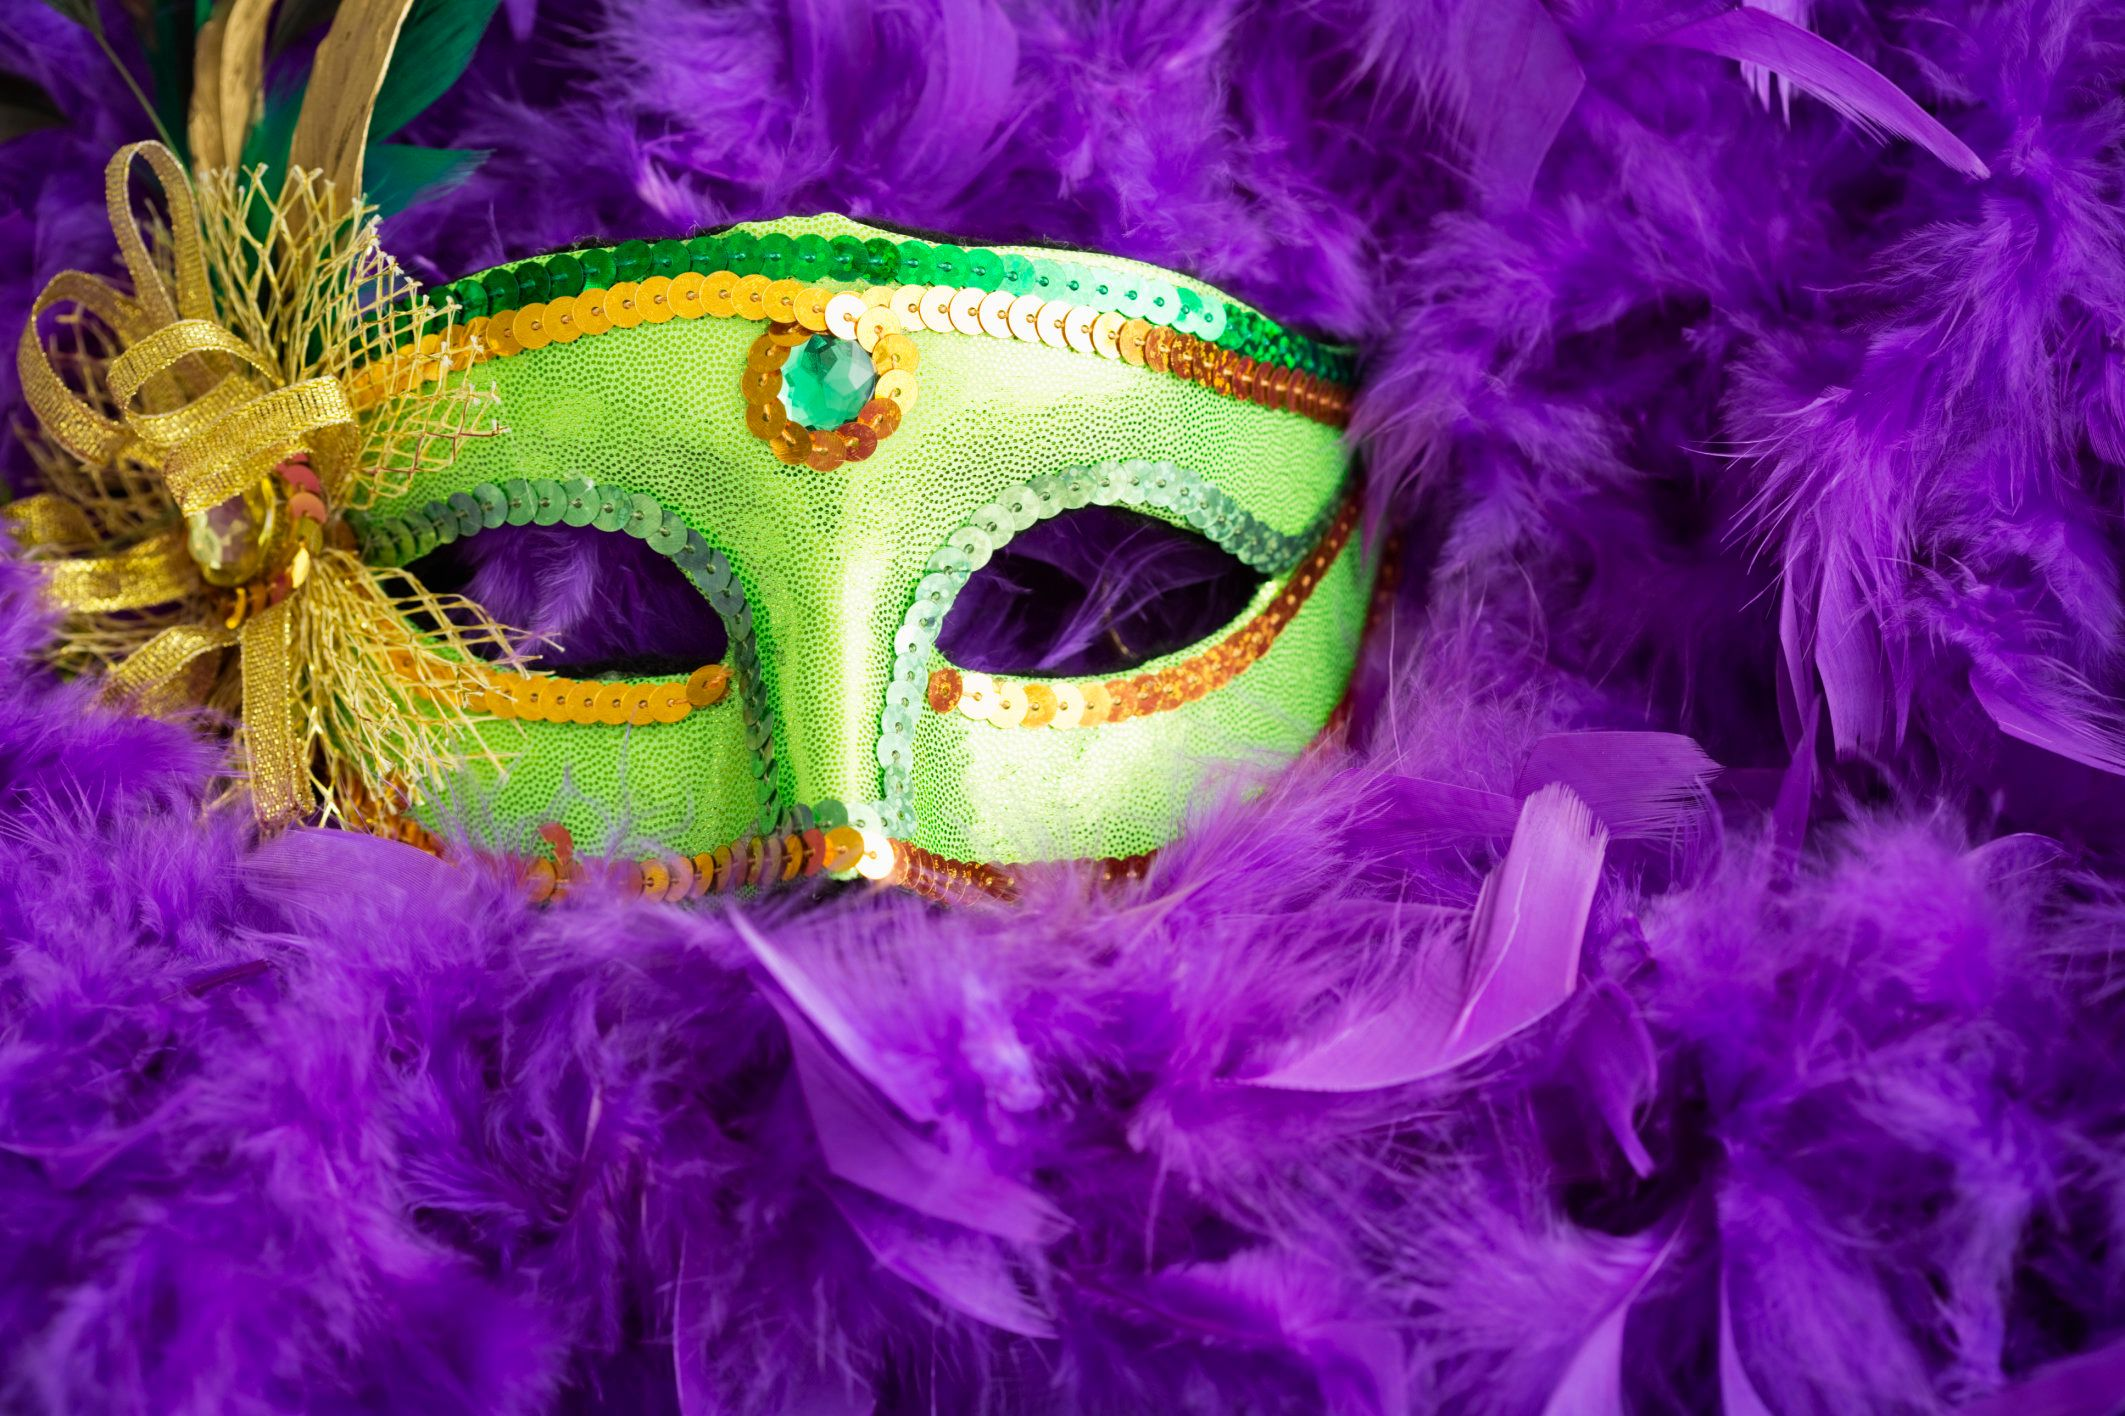 Mardi Gras falls on Tuesday February 9 this year.